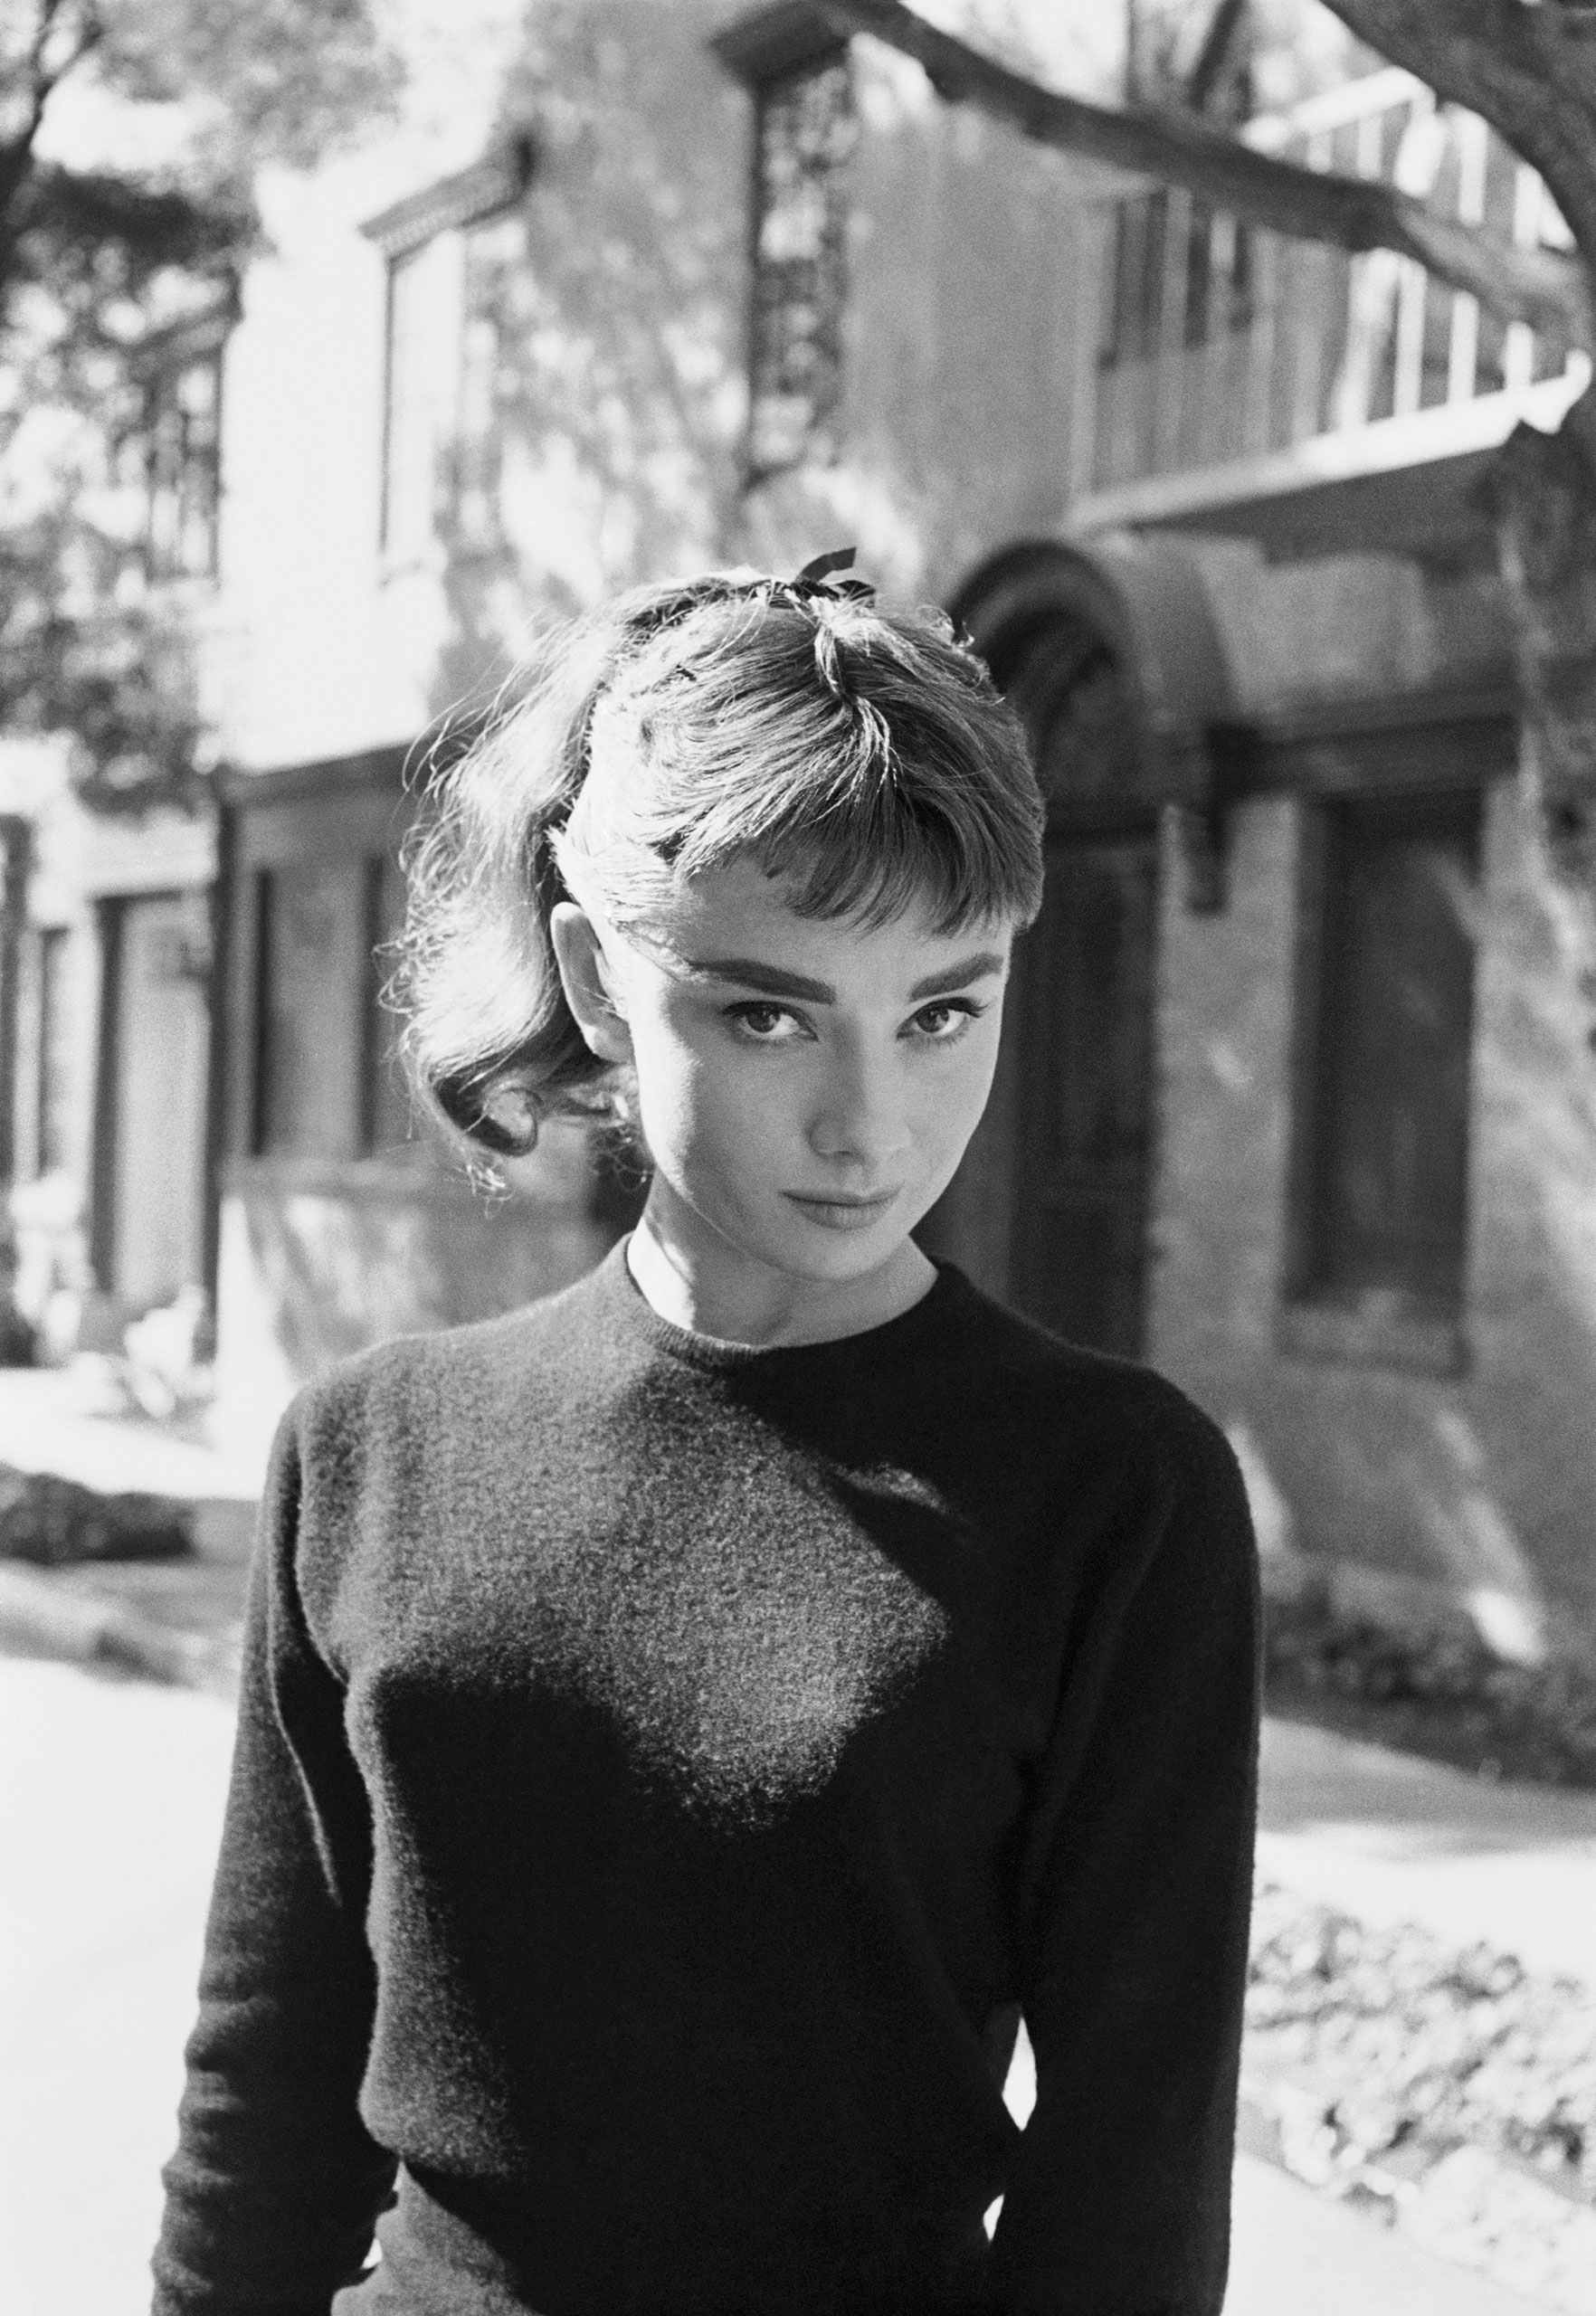 audrey-hepburn-on-the-set-of-sabrina-los-angeles-1953.jpg